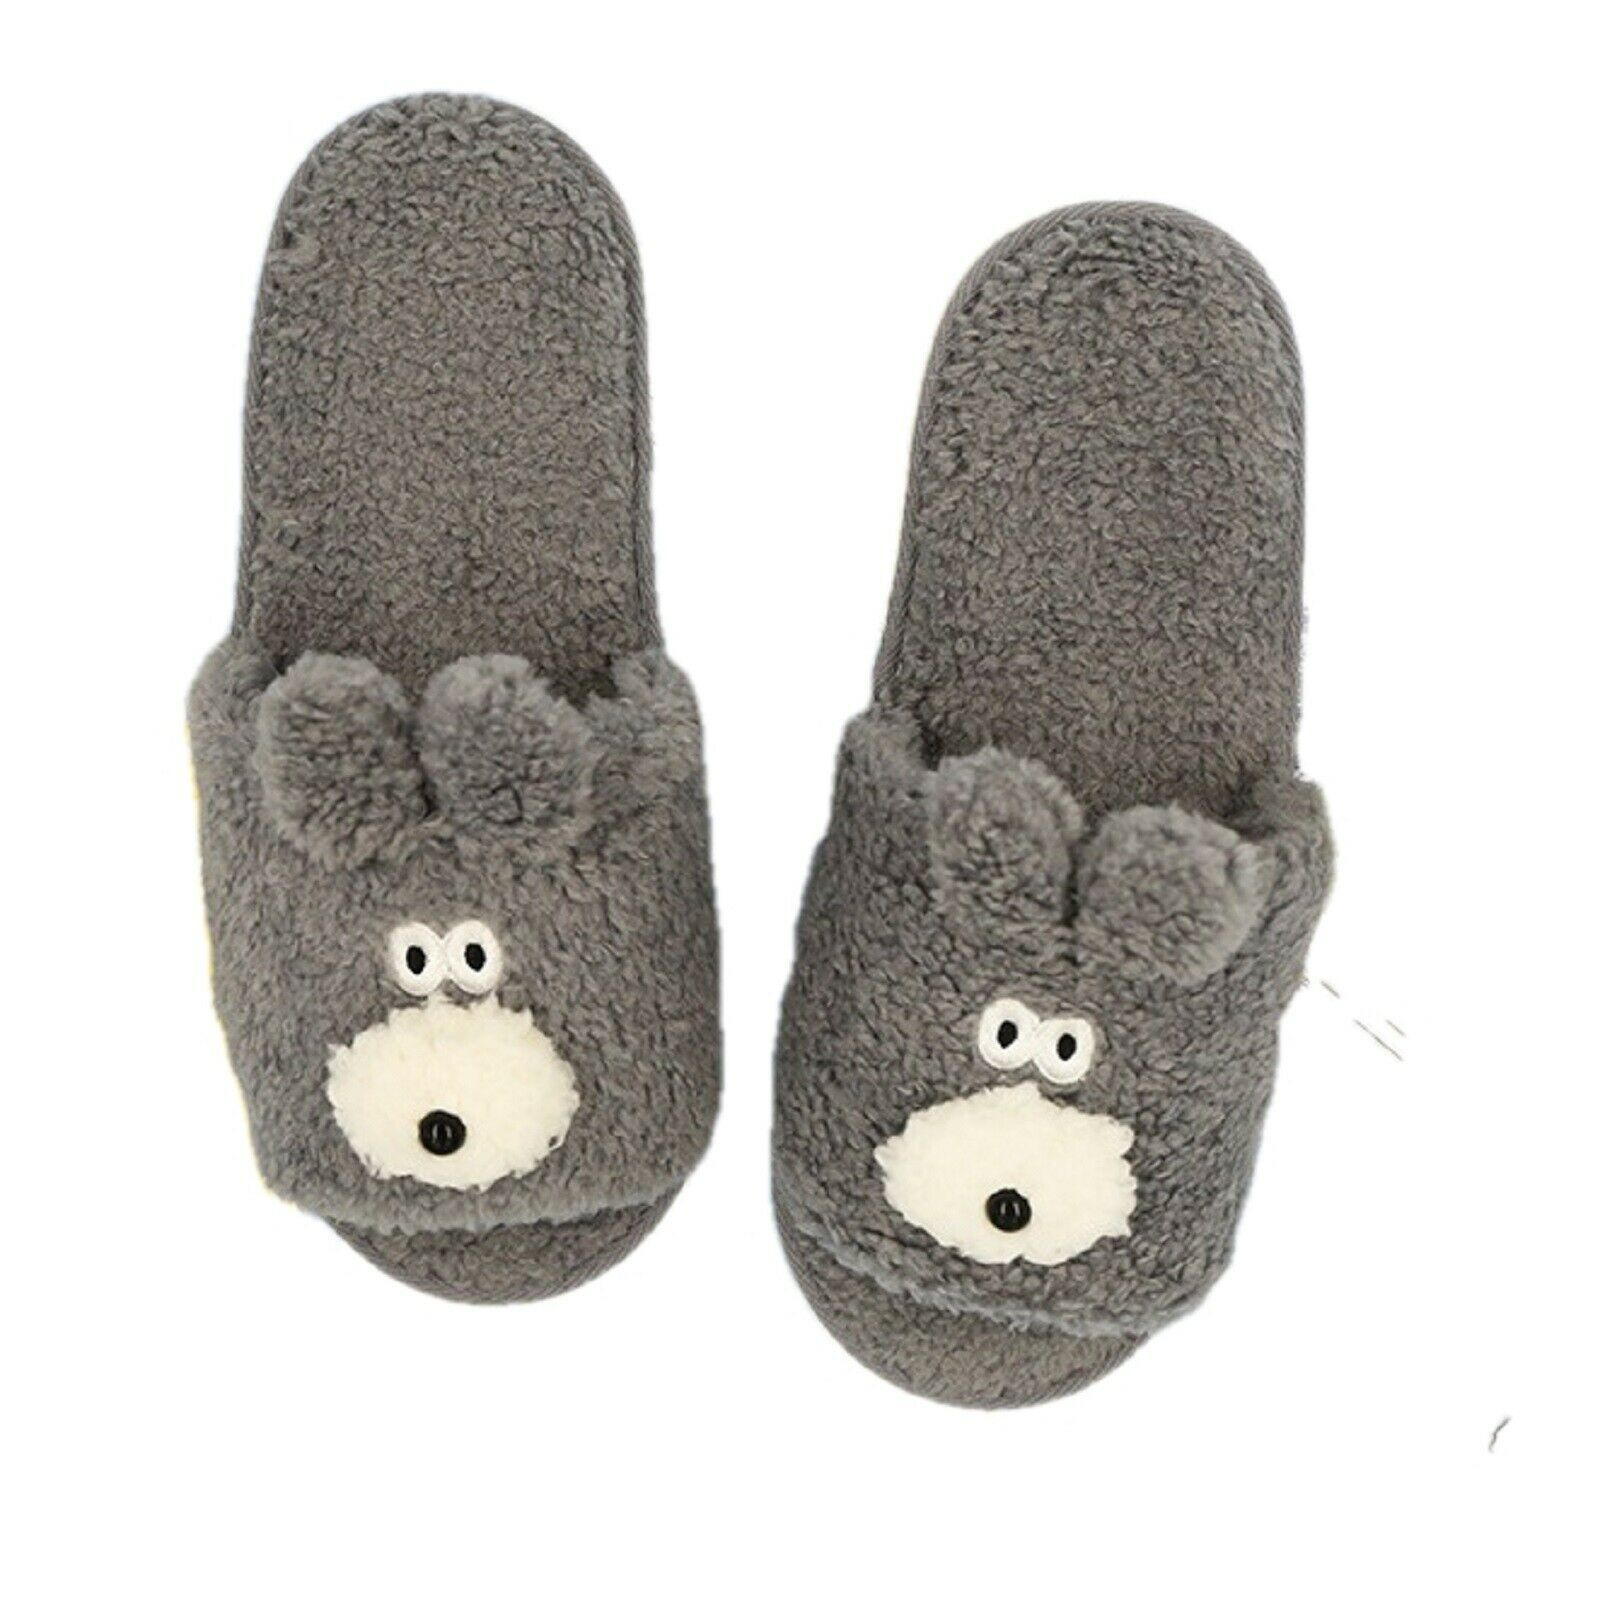 Brunch Brother Woman Home Slippers US Size 6.5 to 9 Free Size (Bunny)